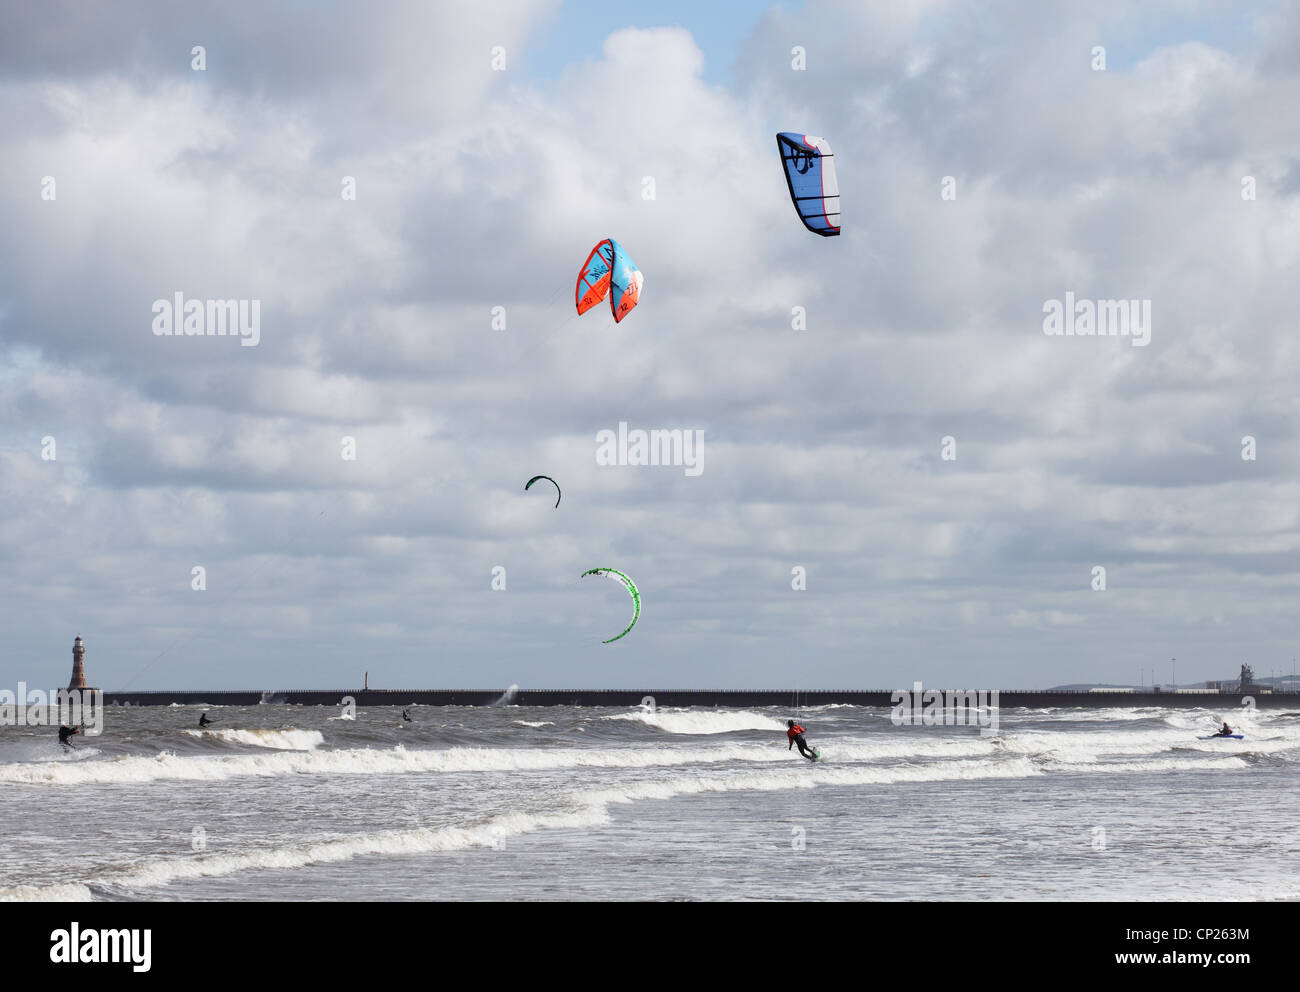 Kitesurfers in the north sea at Roker, Sunderland, north east England, UK - Stock Image